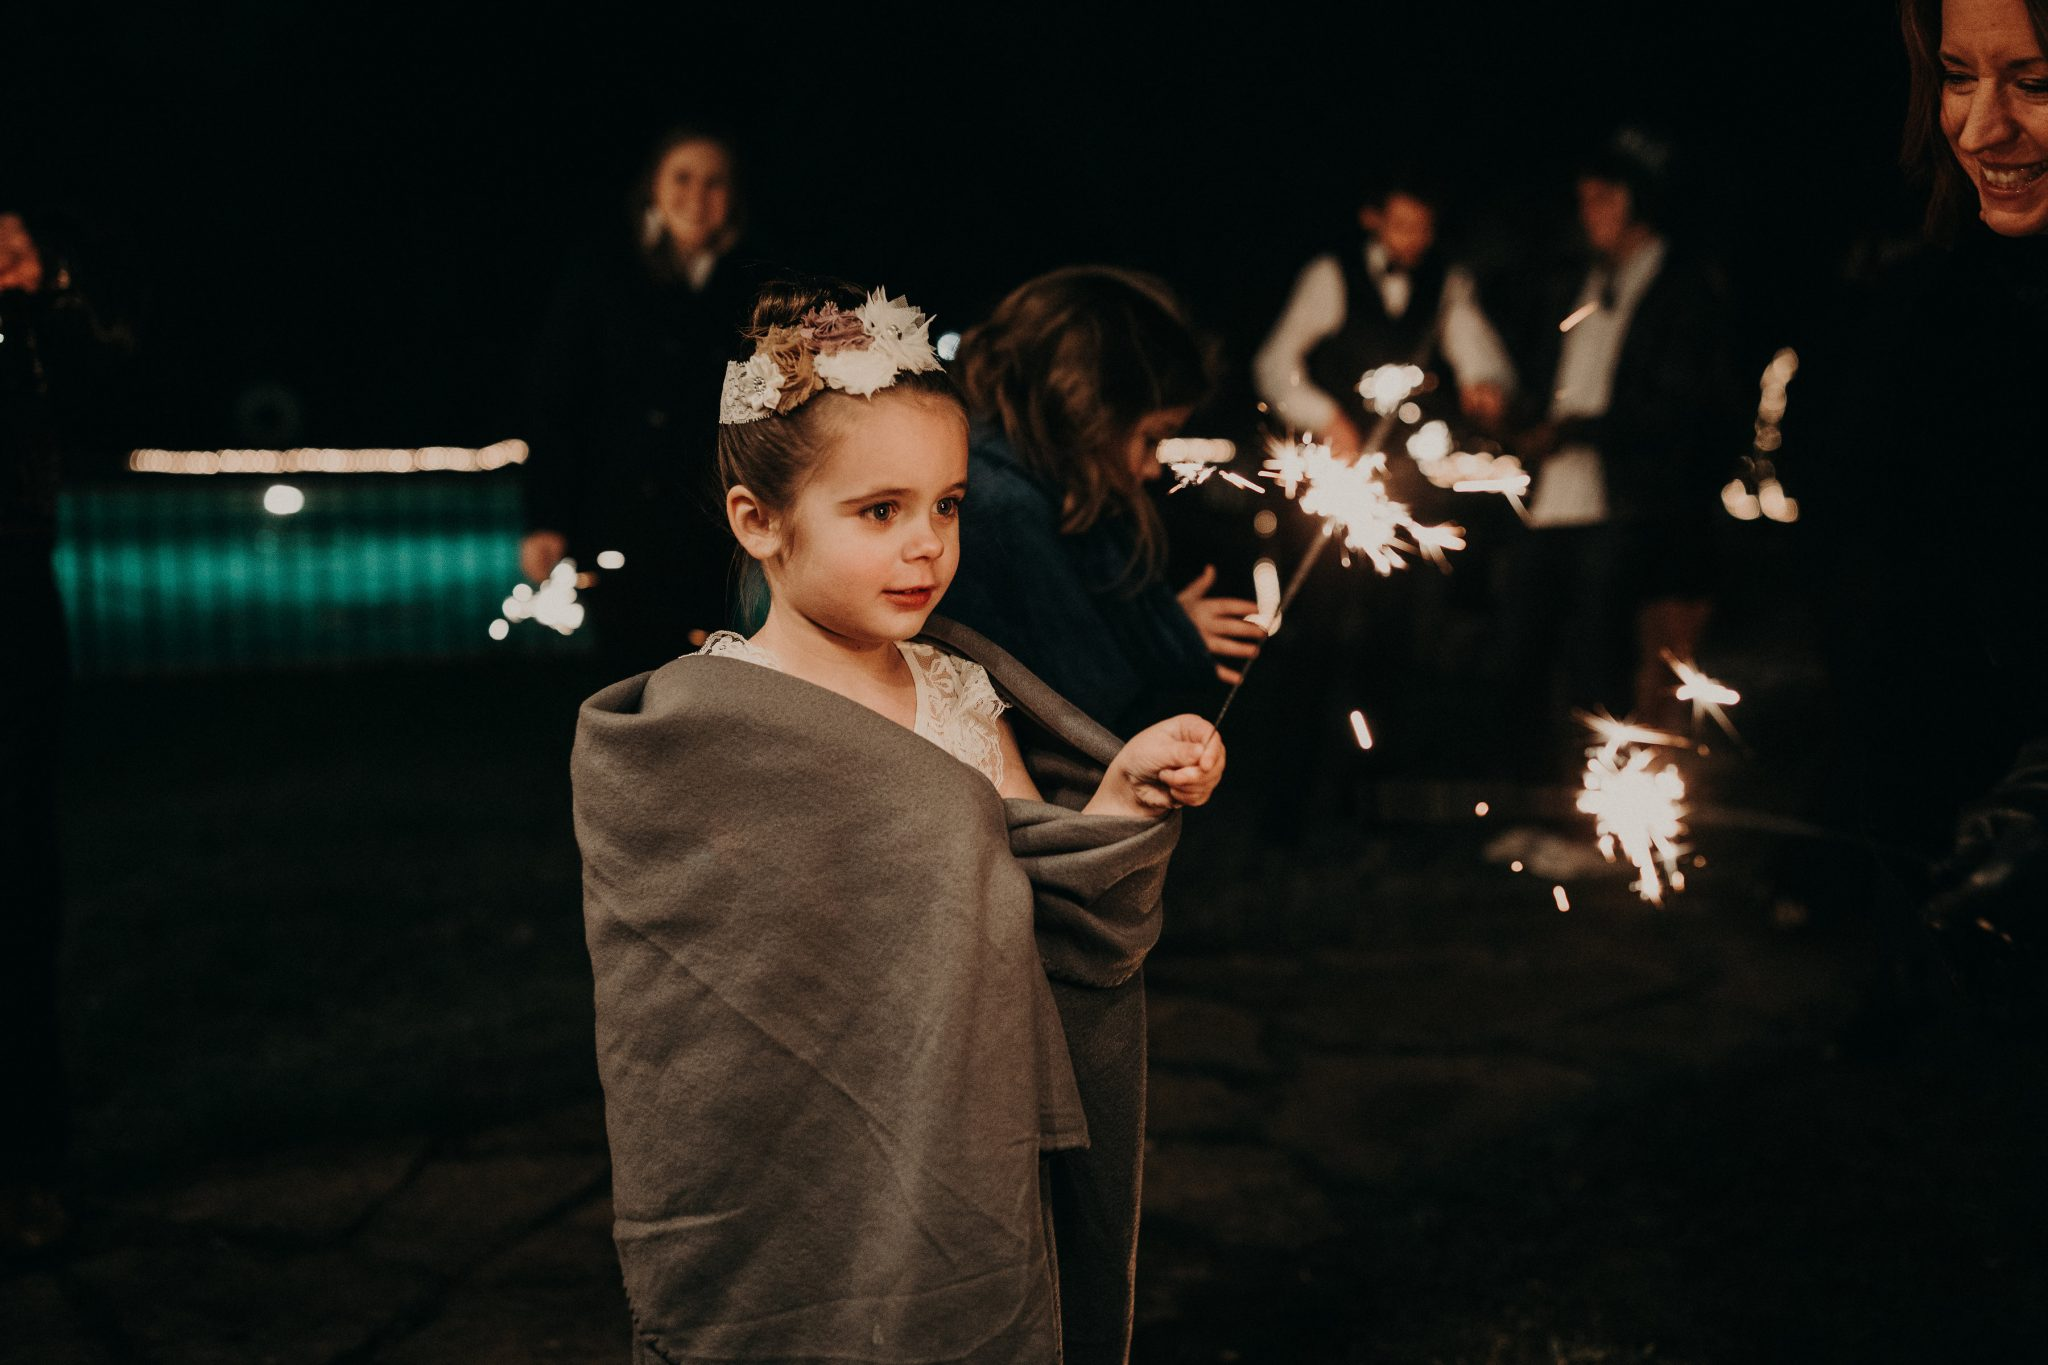 A little girl with a flower headband and wrapped in a blanket staring at the lit sparkler she is holding with people in the background and a women off to the side smiling at her at House on The Hill in Austin, Texas. Photograph by Austin, Texas wedding photographer Nikk Nguyen.